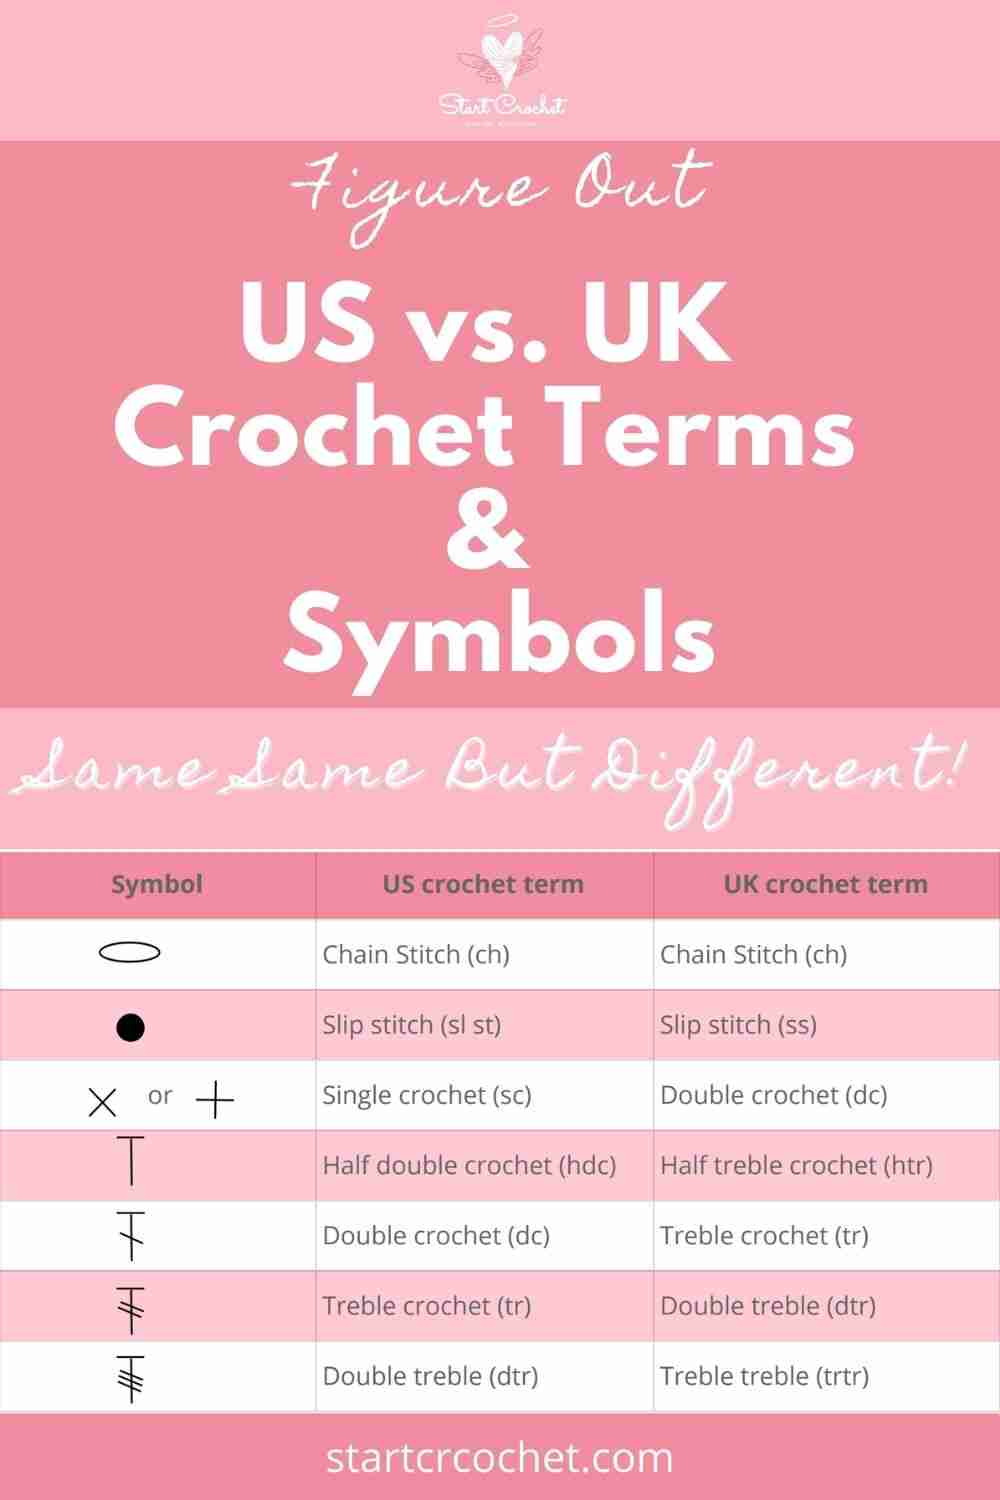 US vs UK Crochet Terms and Symbols - Start Crochet